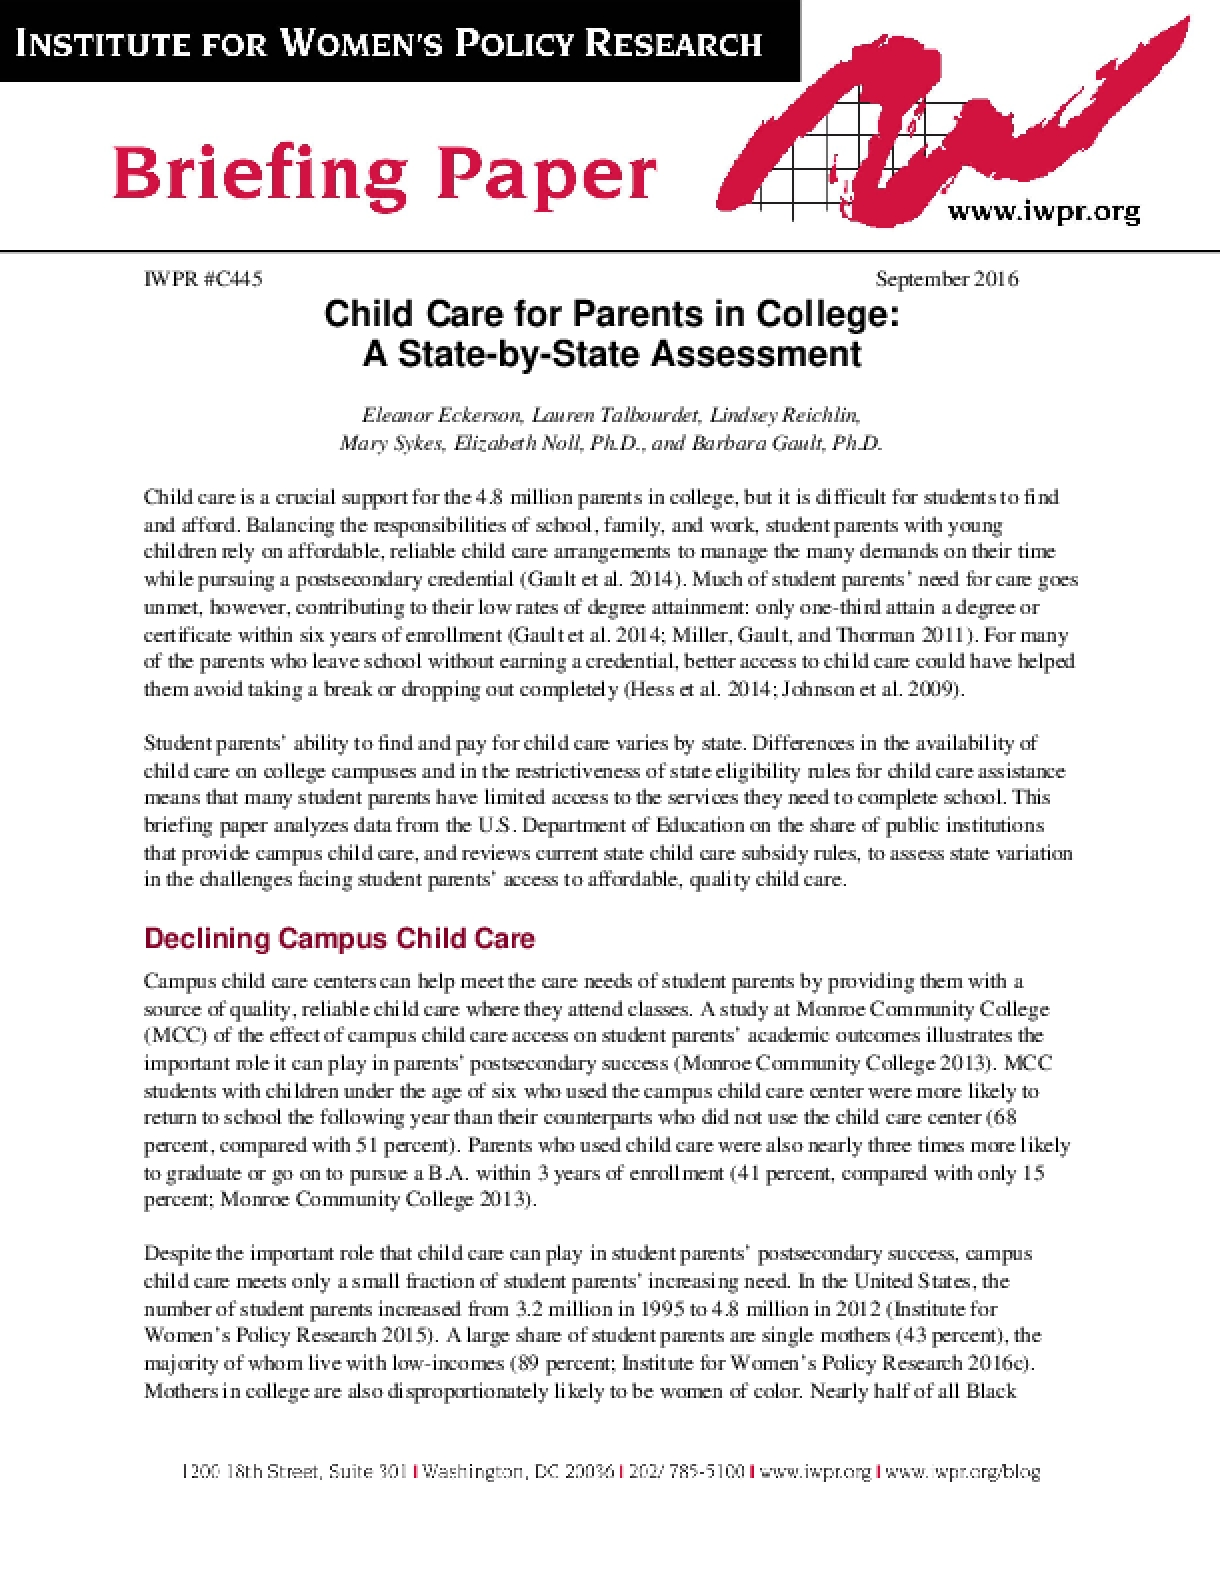 Child Care for Parents in College: A State-by-State Assessment